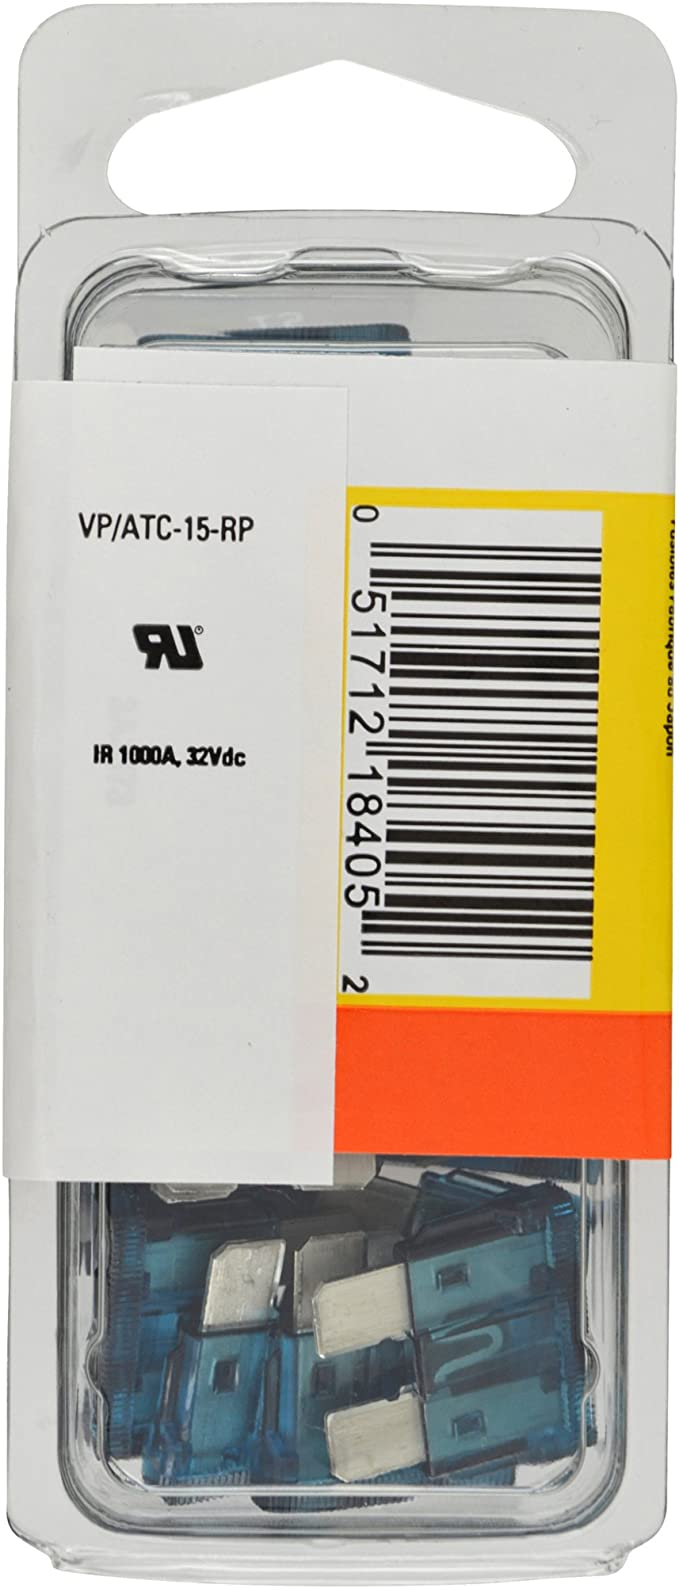 Details about  /Bussmann ATC-7.5 Automotive Fuse 705A 32V Lot of 5 RED  USED